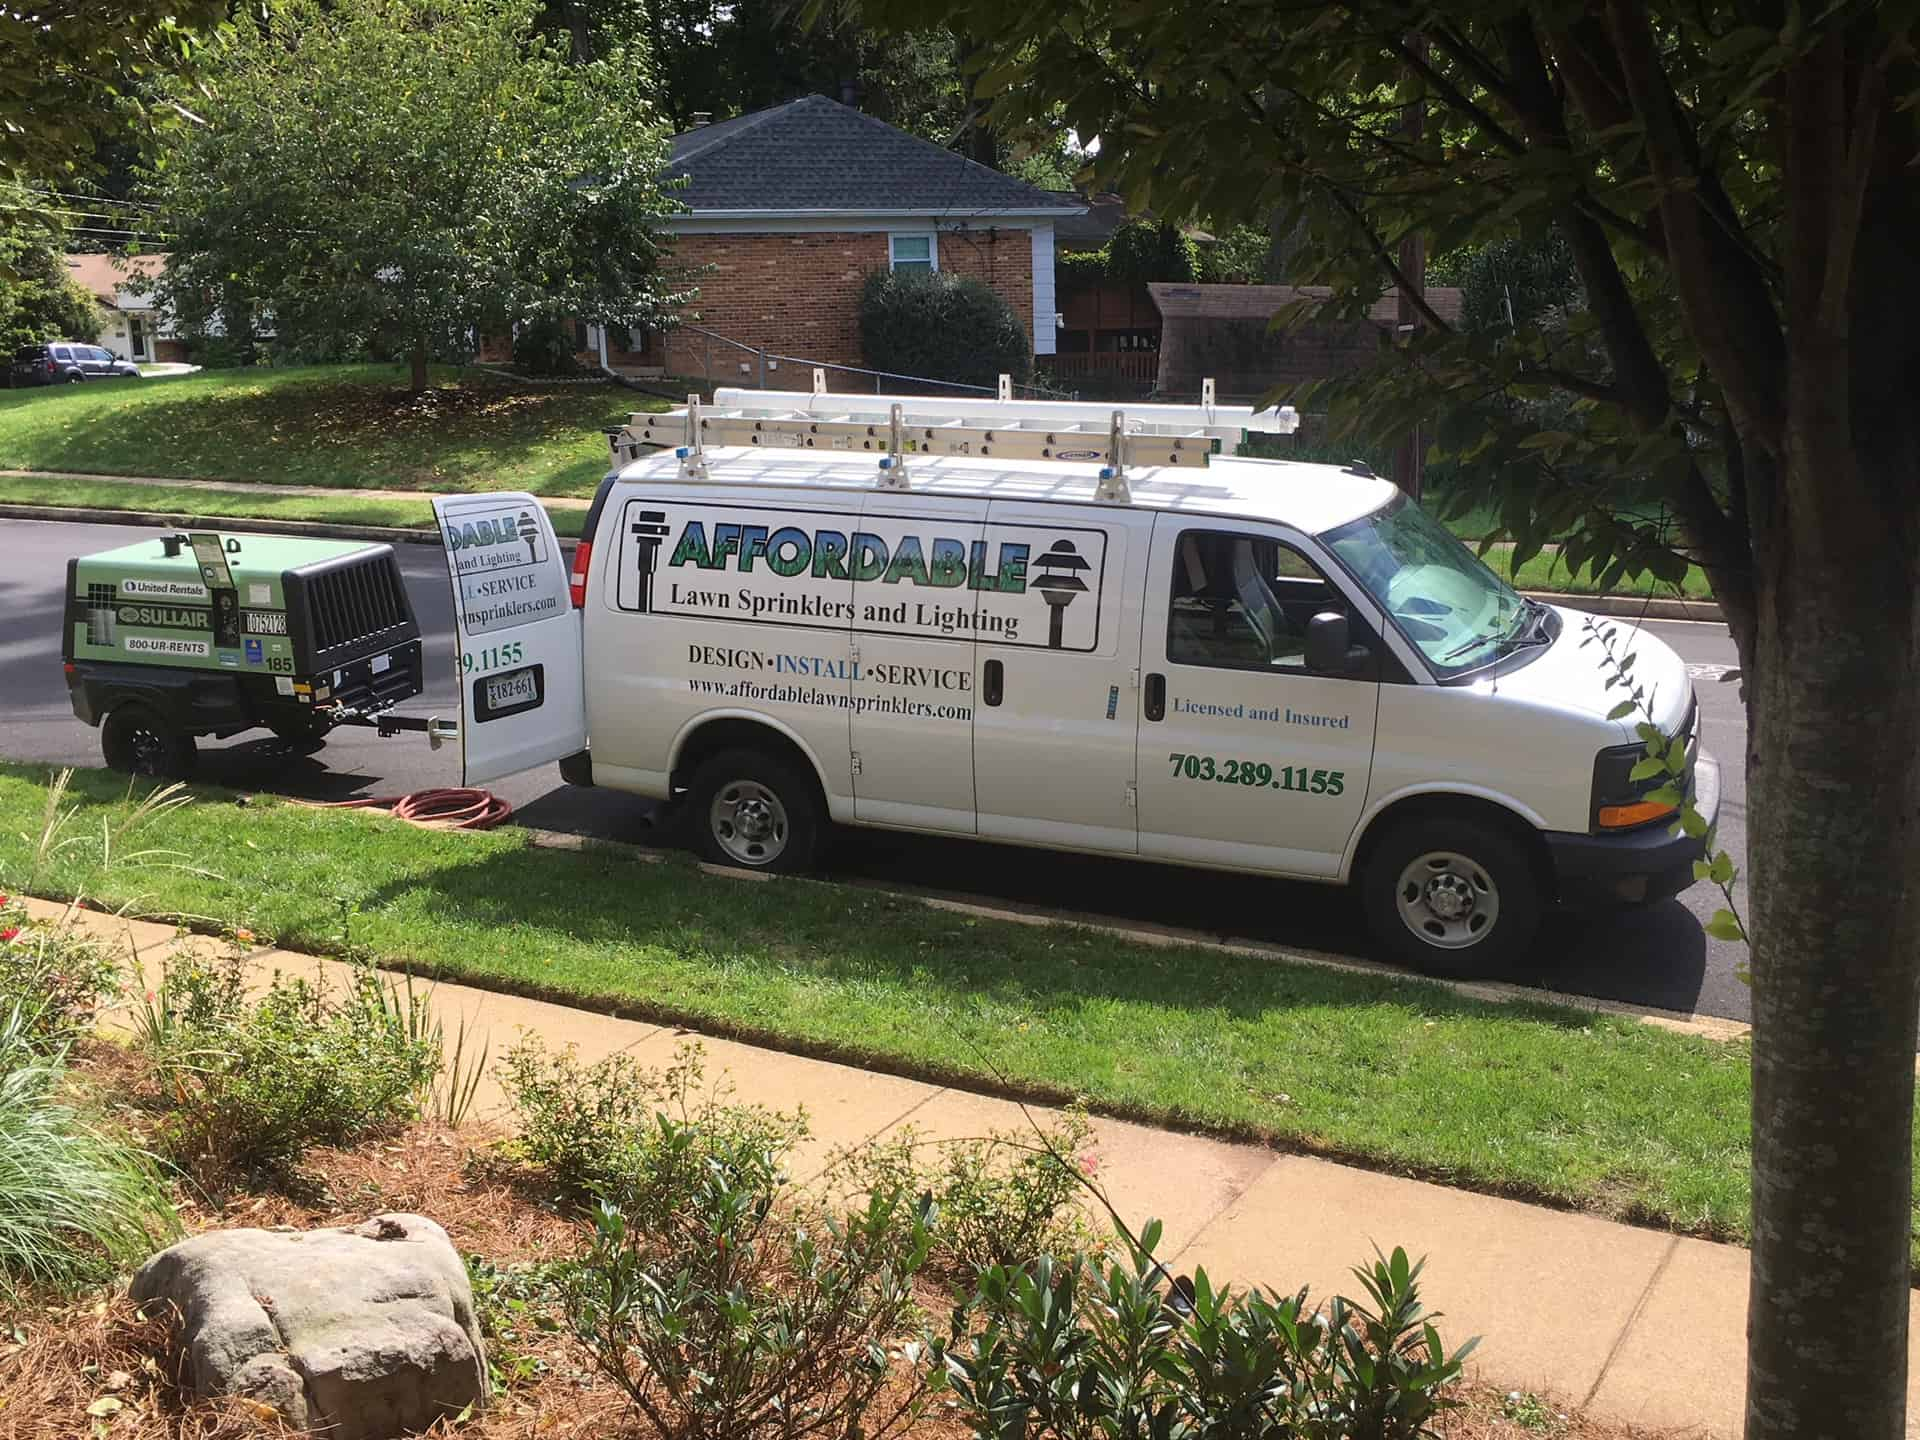 Affordable Lawn Sprinklers and Lighting